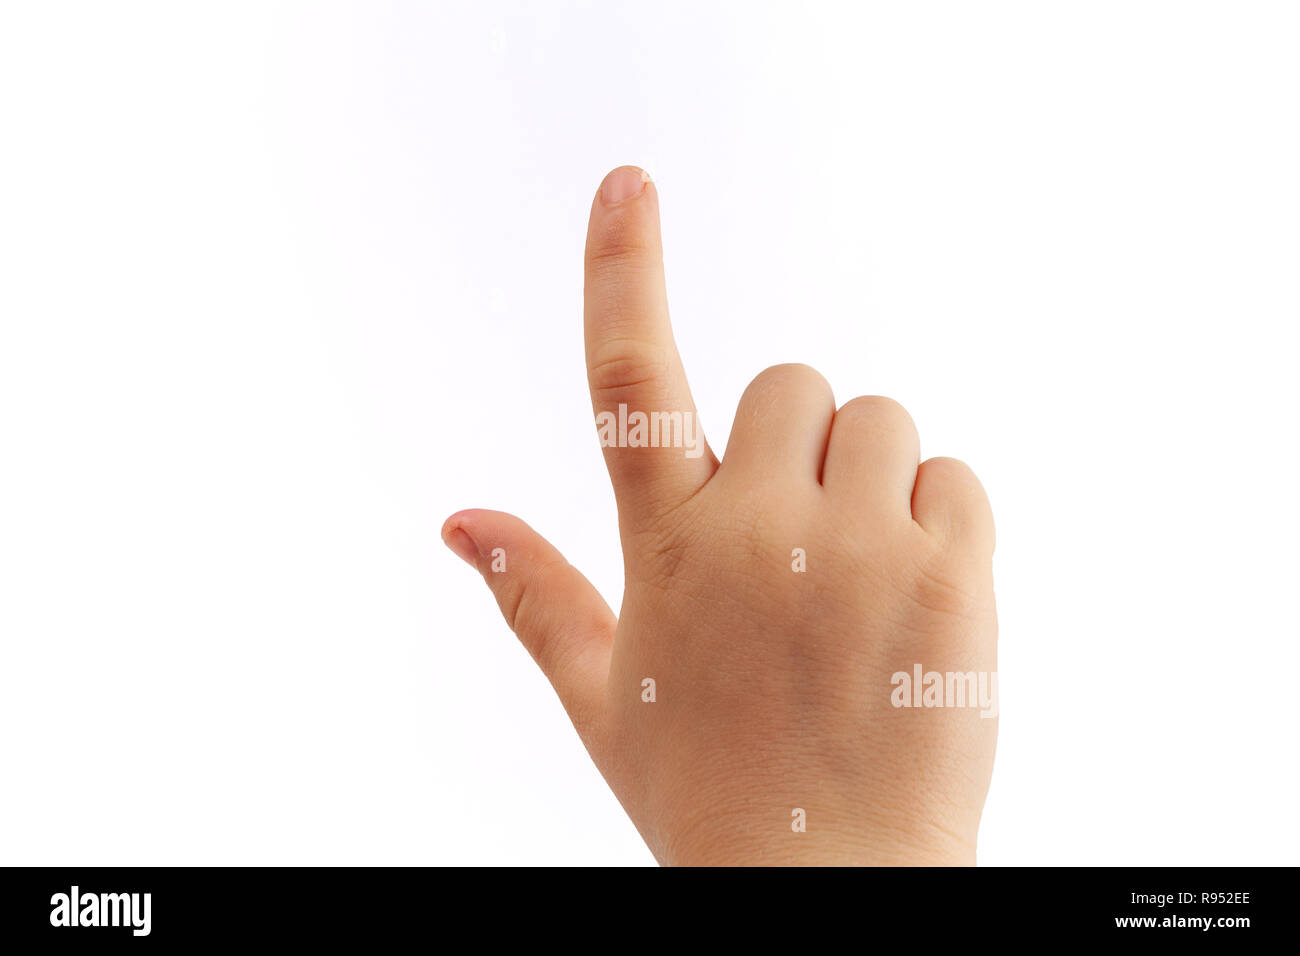 Child's right hand tapping with index finger isolated on white background - Stock Image